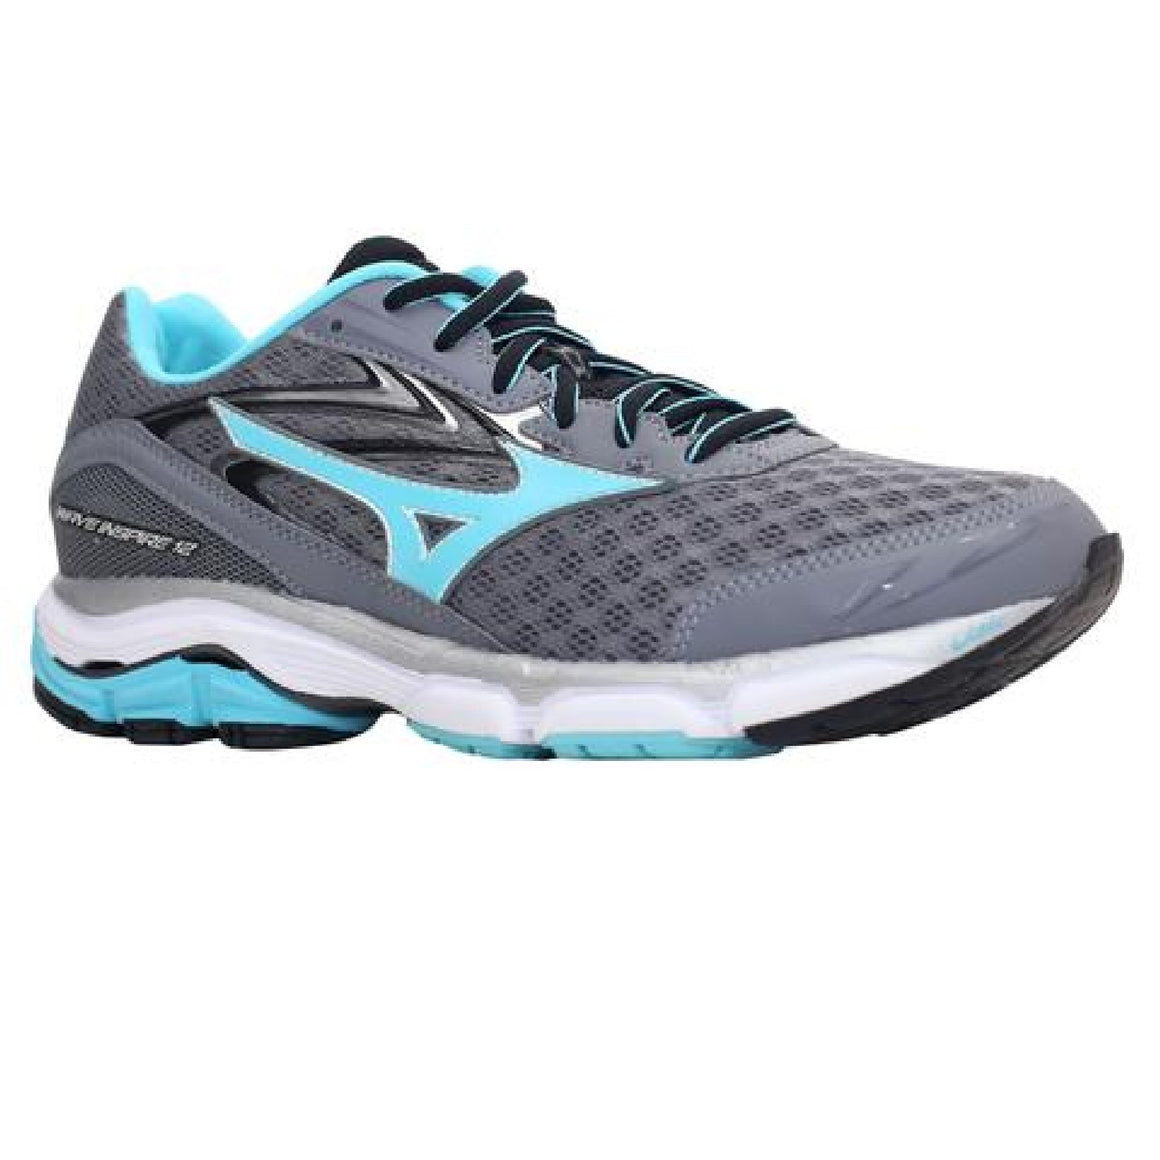 Ladies Mizuno Wave Inspire 12